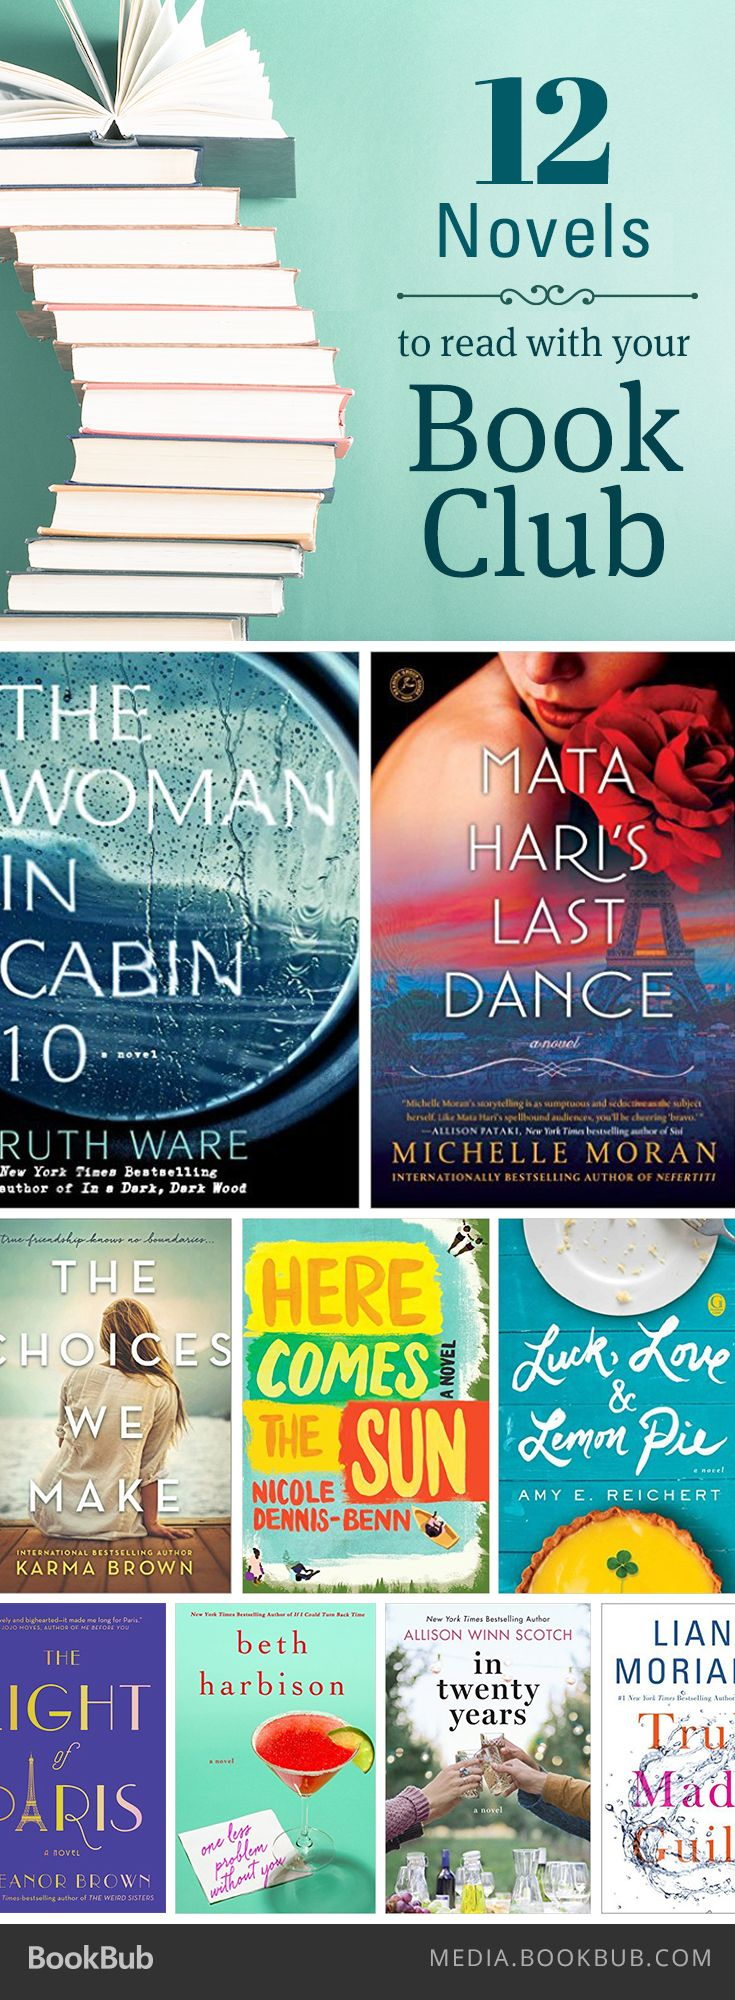 12 novels to read with your book club, including Liane Moriarty's Truly Madly Guilty.